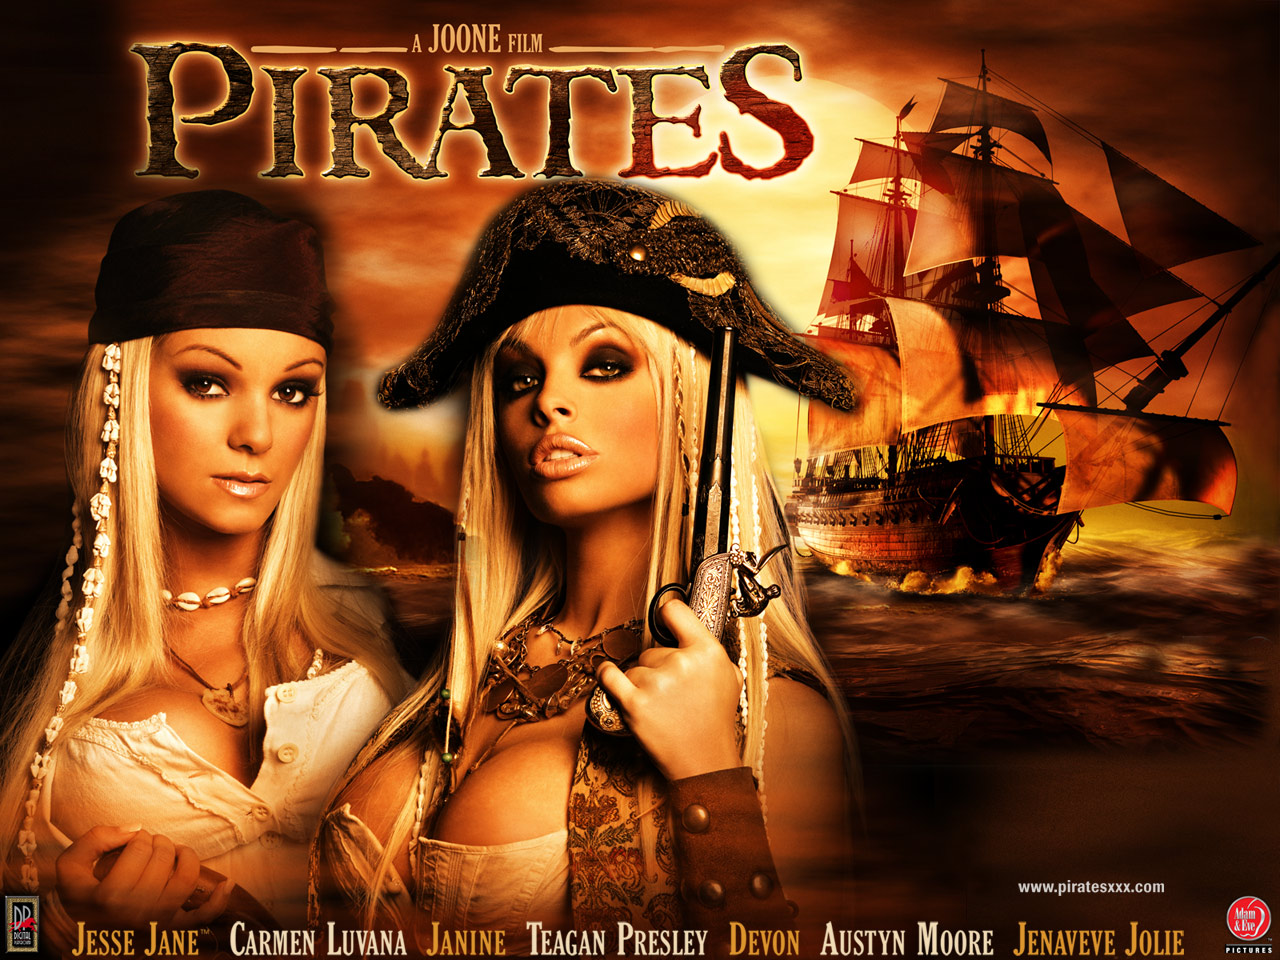 Pirates of the caribbean porn movie porn film